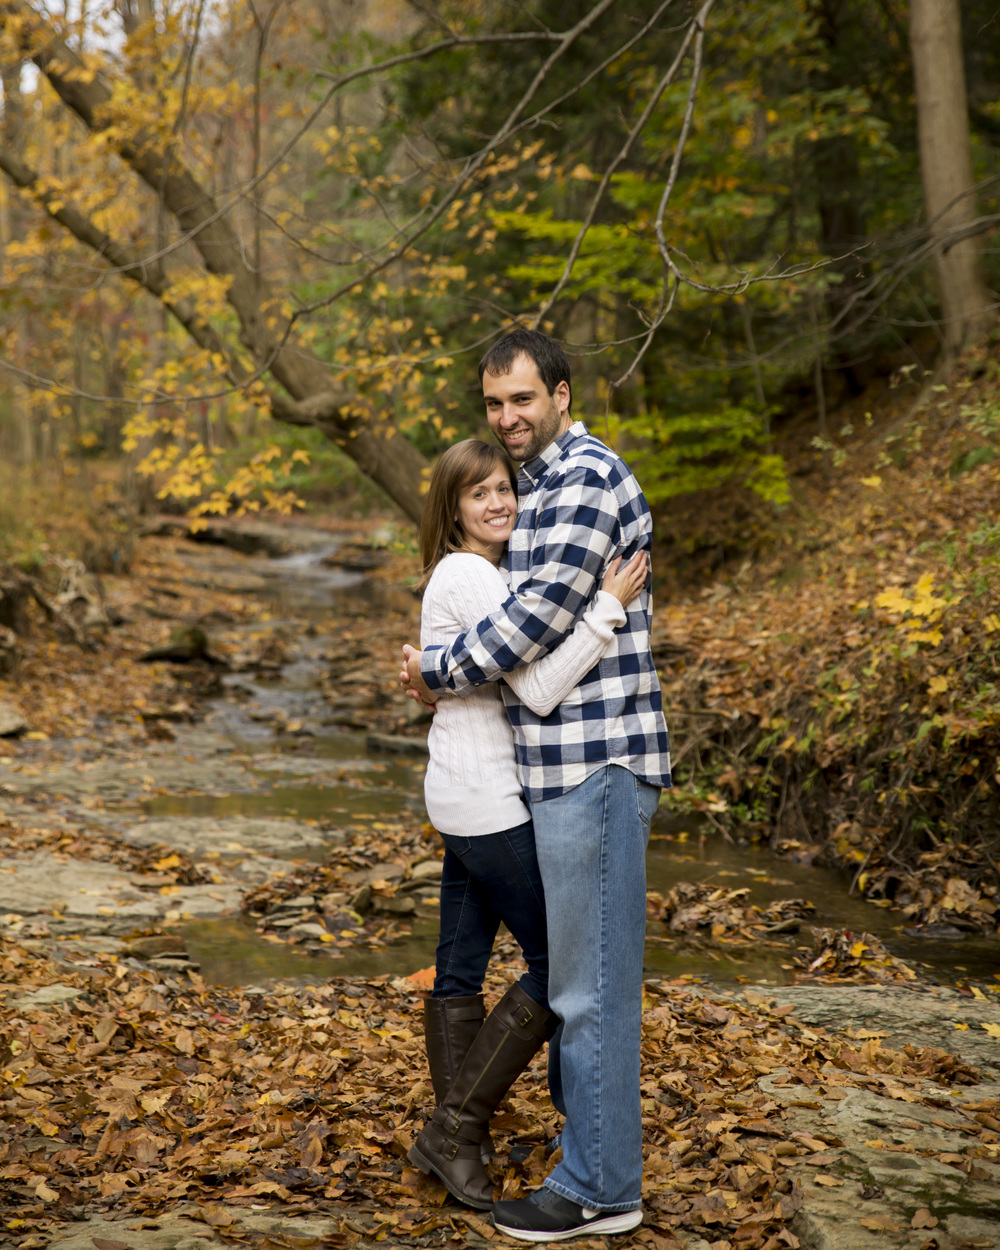 Matt_Heather_Engagement_Falls_Run_Park073.JPG